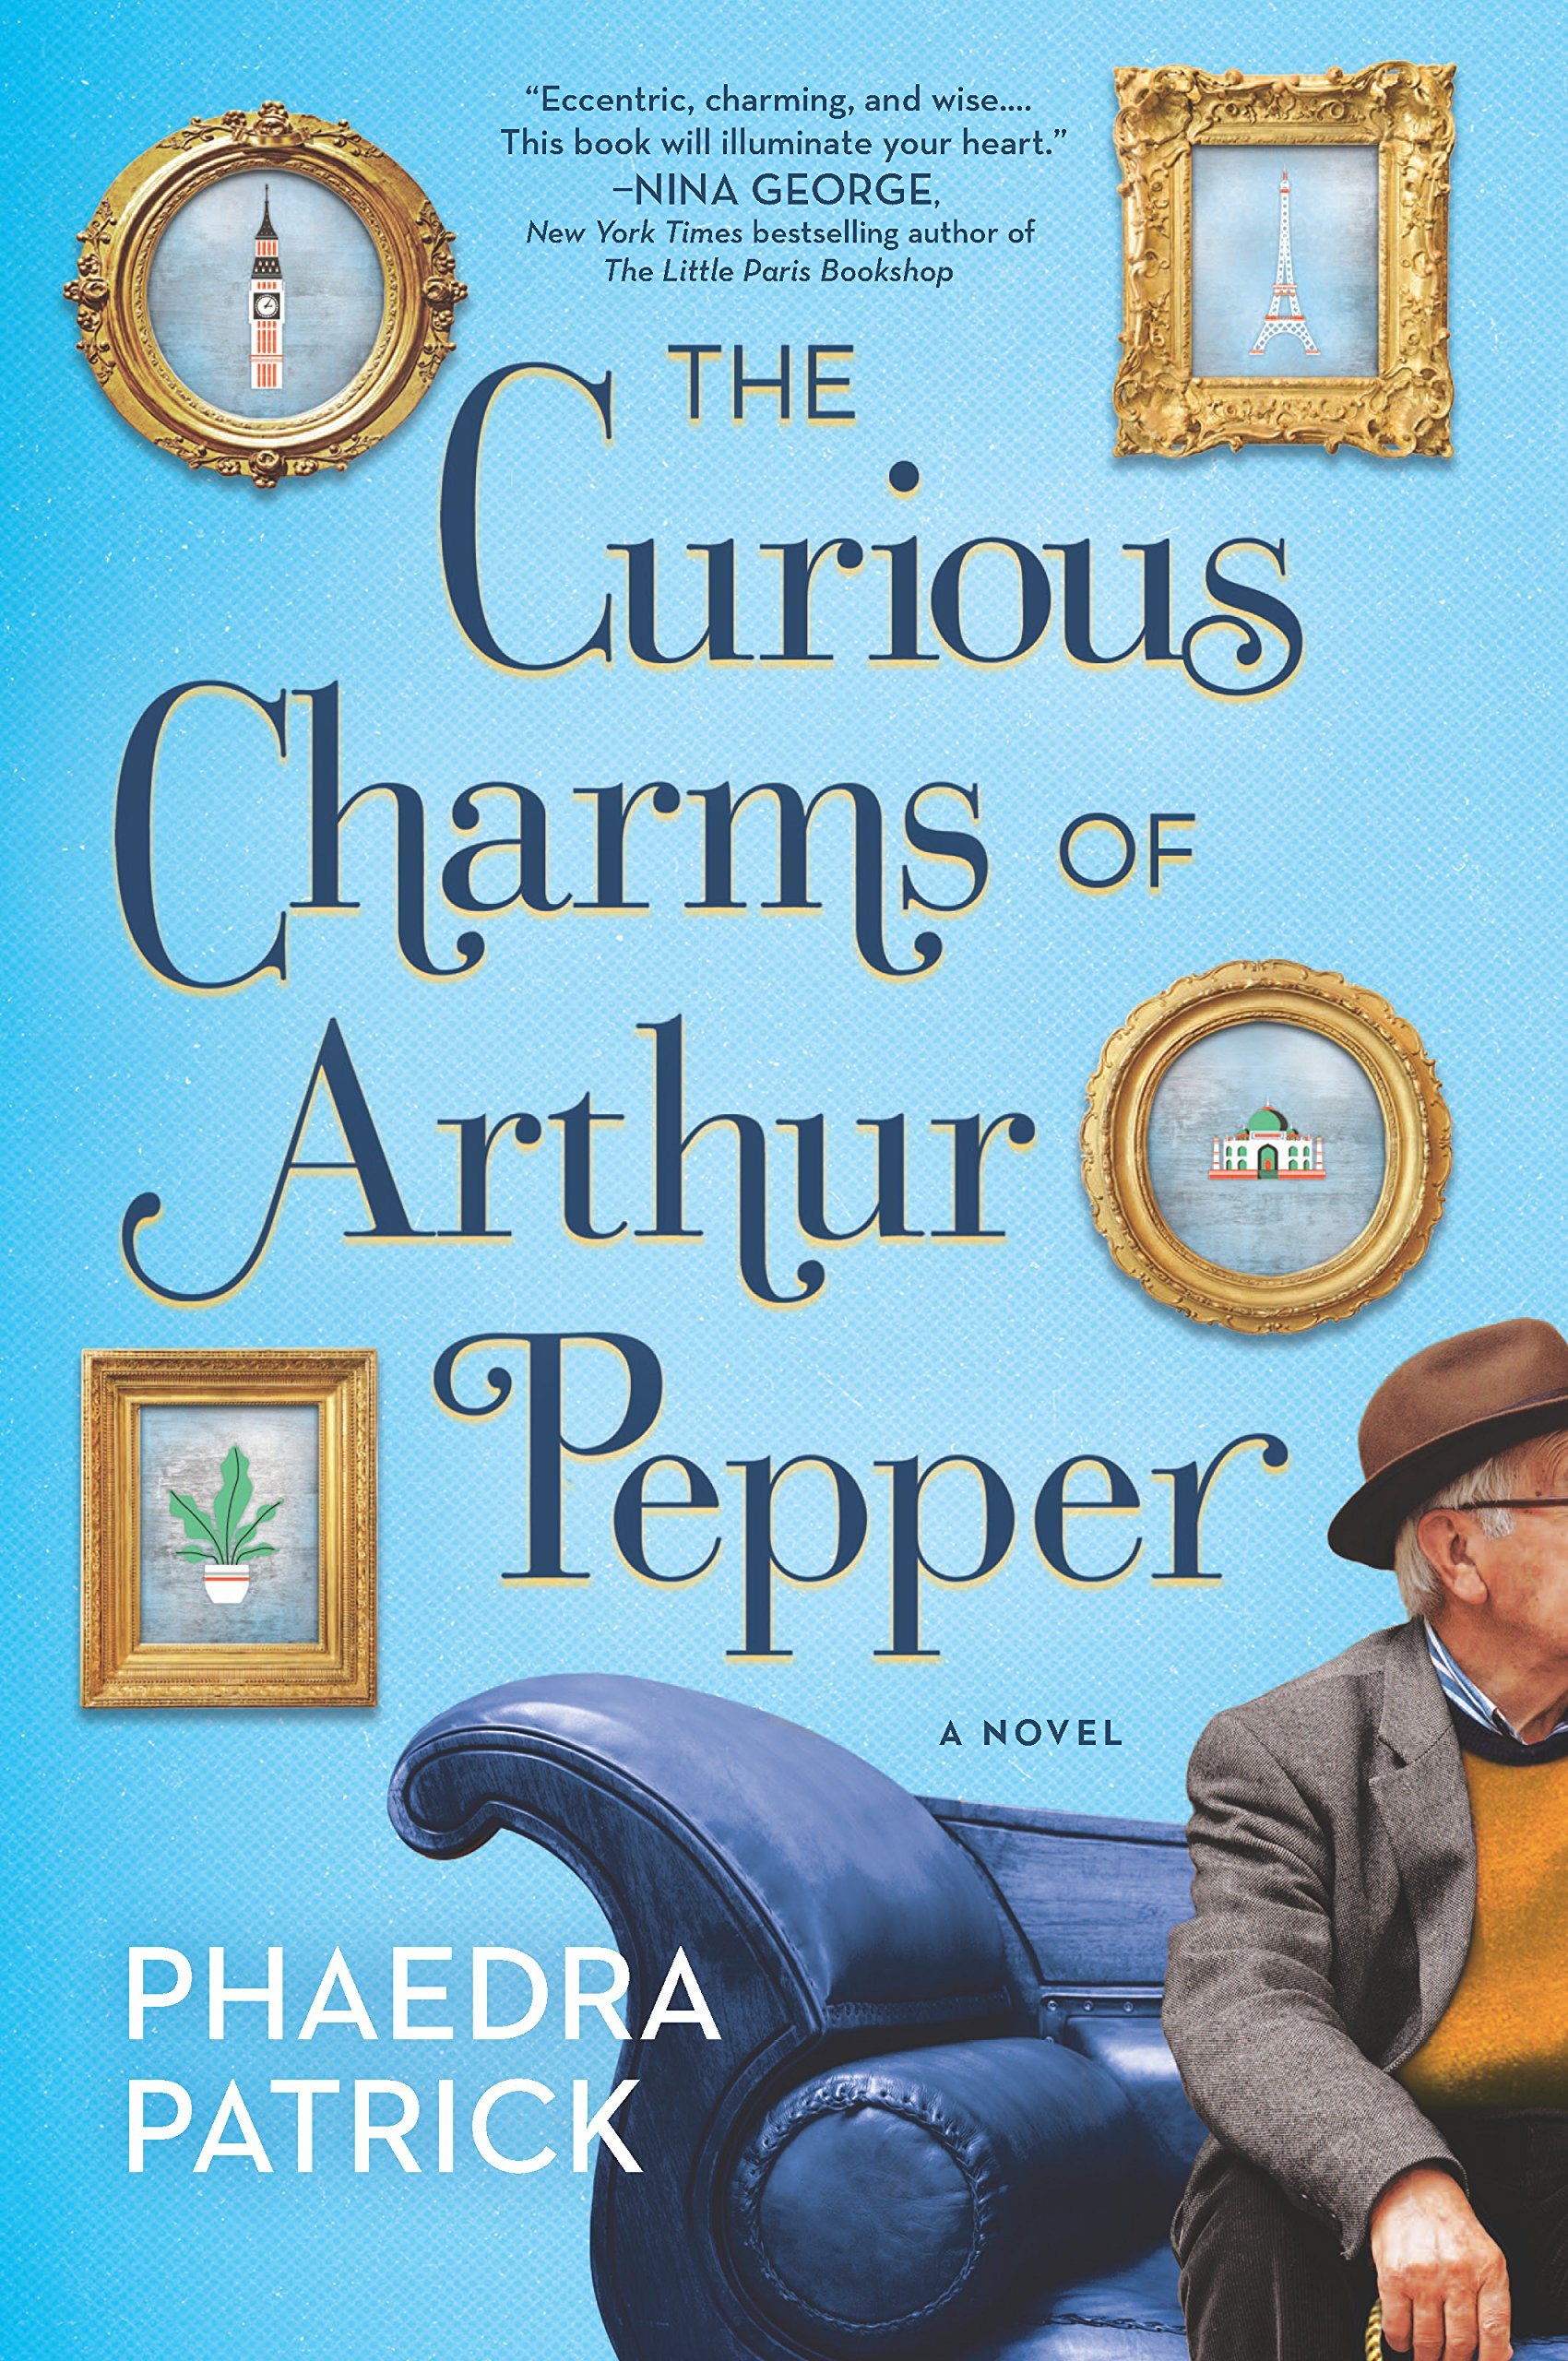 Image result for The Curious Charms of Arthur Pepper by Phaedra Patrick